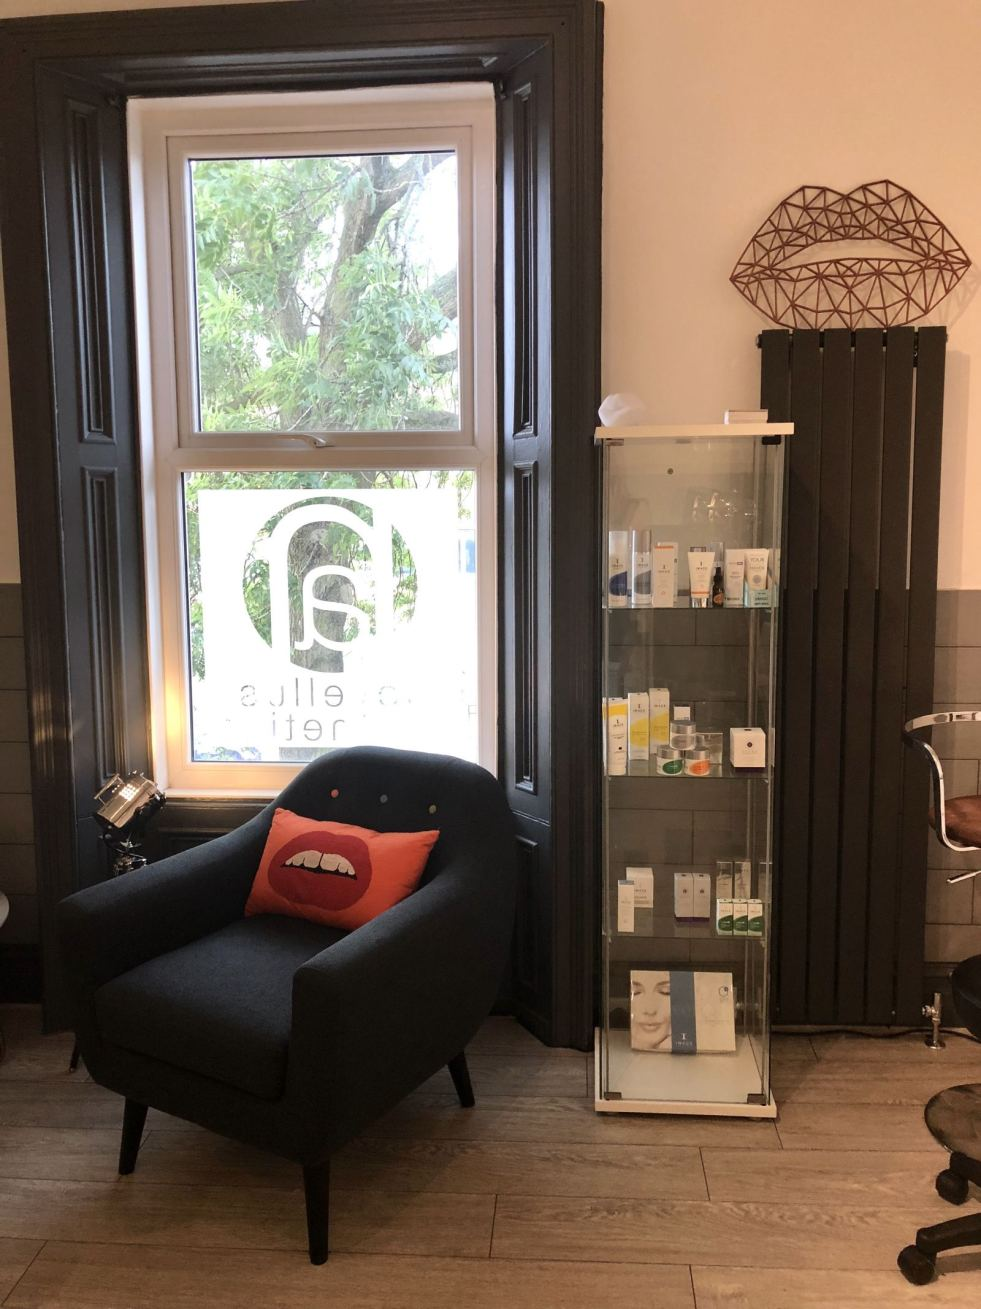 A picture of the consulting area in the brand new clinic room at Novellus Aesthetics Jesmond, Newcastle showing a chair with a cusion with lips on it and a glass cabinet filled with Image Skincare products taken for Fashion Voyeur Blog